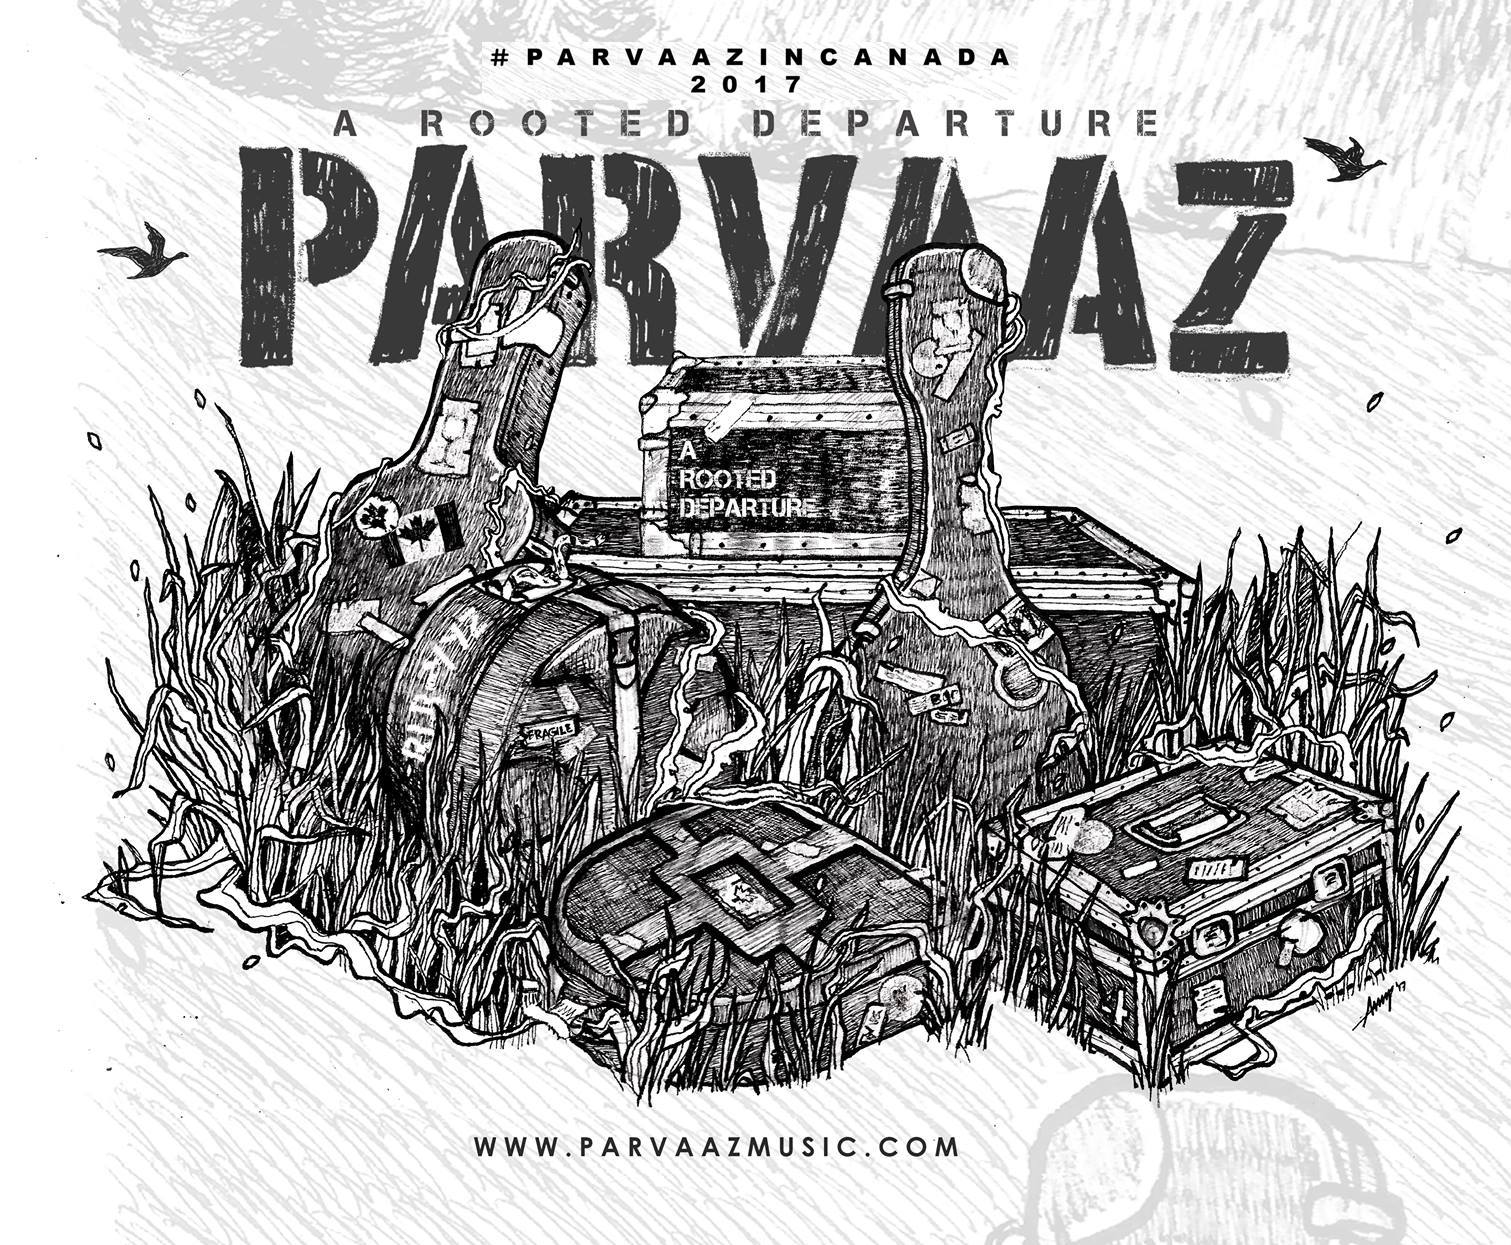 """Parvaaz  is a psychedelic rock band best known for high-energy live performances and expansive soundscapes that seamlessly shift between heavy arena rock and soulful acoustic. The band released their debut LP, """"Baran,"""" in August, 2014, and received an overwhelming positive response from fans and critics alike. Their music is best described as a haunting soundscape of blues, rock, and psychedelia, with profound and philosophical Kashmiri and Urdu lyrics about common human experiences and ideas.  This Canadian tour will be their first outside India. For a band whose music has such a distinct identity in its members' heritage, the tour represents an opportunity, daunting as it may be, to present it to a completely new audience. This combination of staying true to one's roots while going out of one's comfort zone is reflected in the tour's name, """"A Rooted Departure."""" While other bands from India have previously toured in Canada, their music has either been in the """"fusion"""" genre, led by their strong """"Indian-ness,"""" or completely Western in their nature. Parvaaz, however, bring with them a perfect balance of East gift-wrapped in the West, past packaged in the present, soaring vocals surrounded by progressive soundscapes and melancholy submerged in beauty, all of which combine to immerse us in an aural experience that unleashes waves of delayed gratification."""